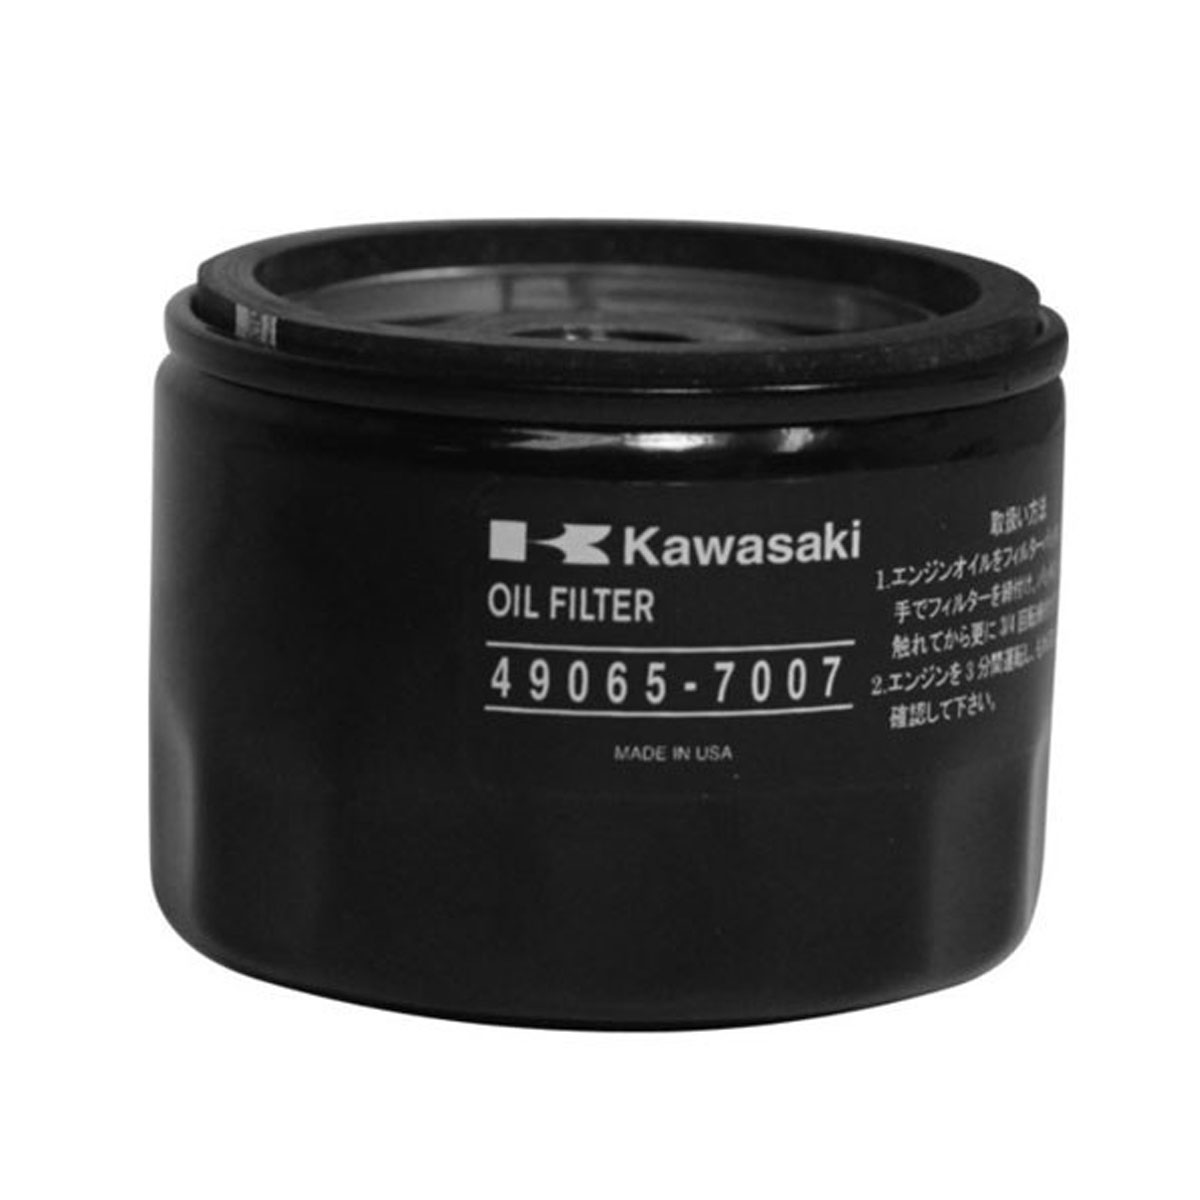 Engine Filter Oil    Kawasaki 49065